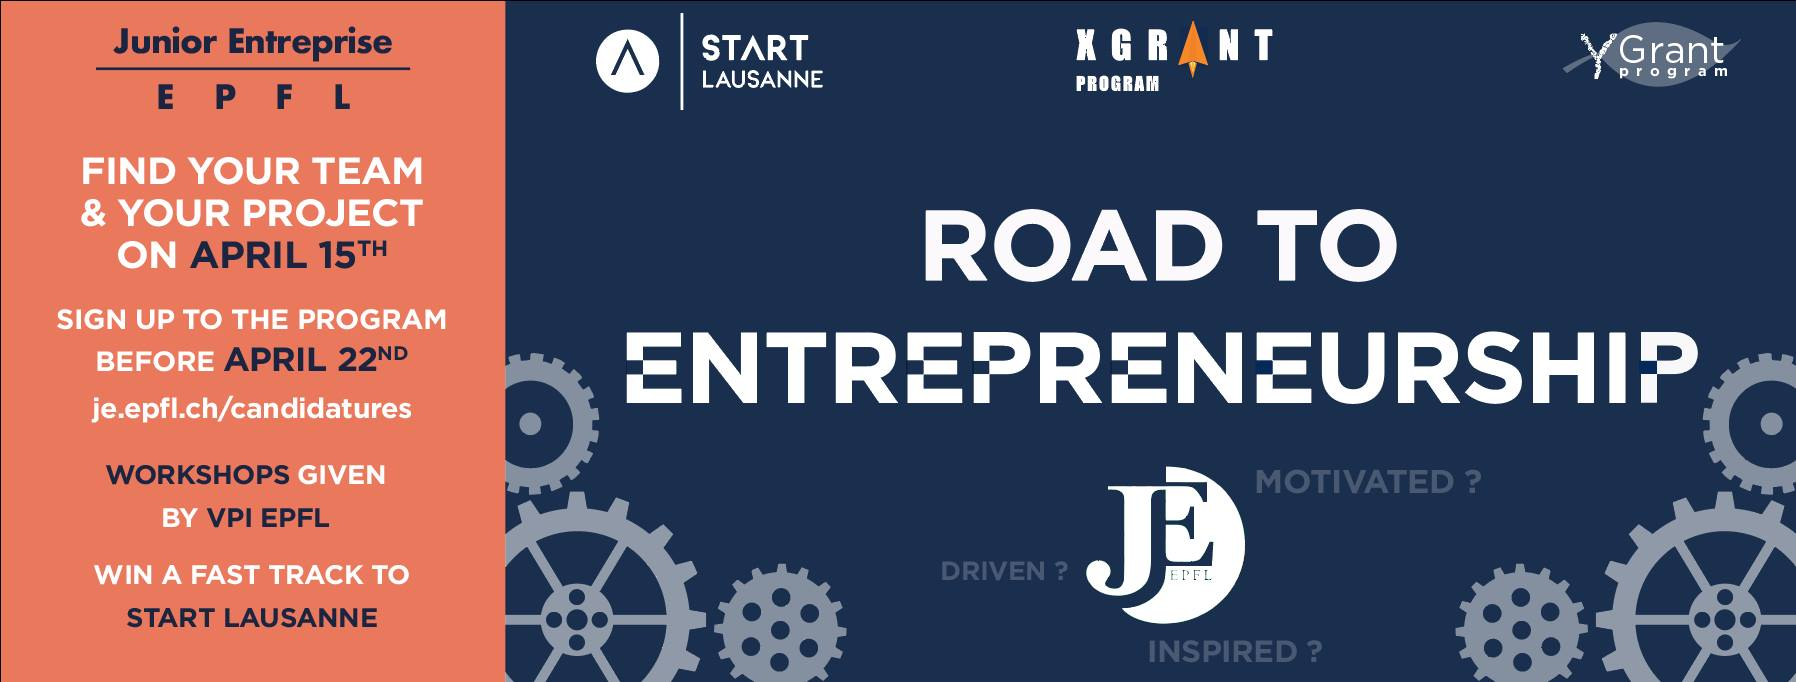 Road To Entrepreneurship